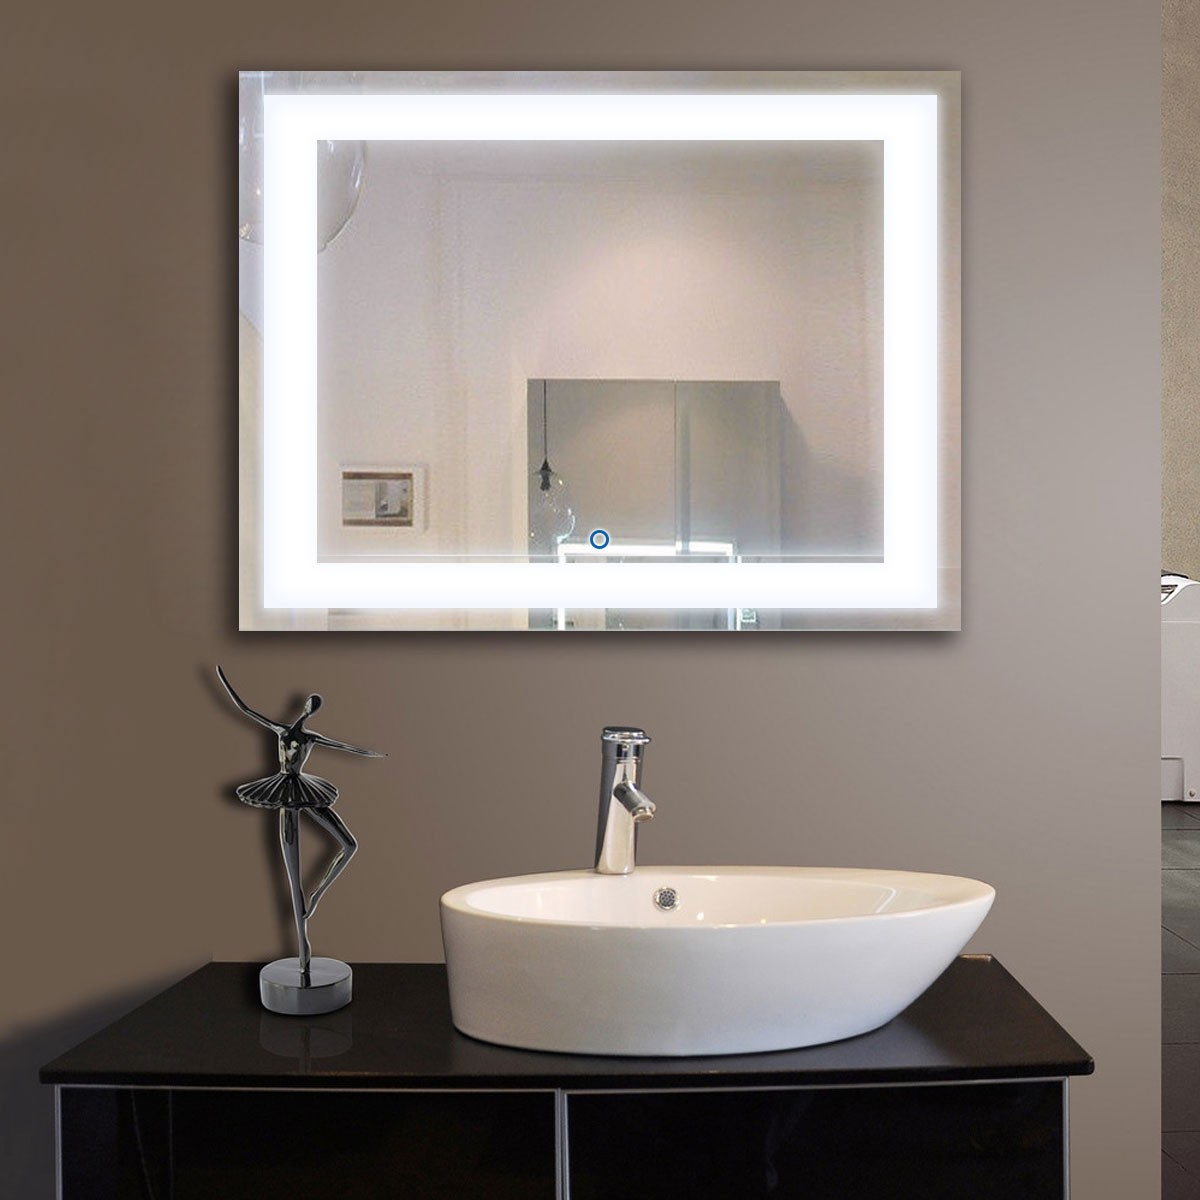 36 x 28 In Horizontal LED Mirror, Touch Button (DK-OD-CK010-I)